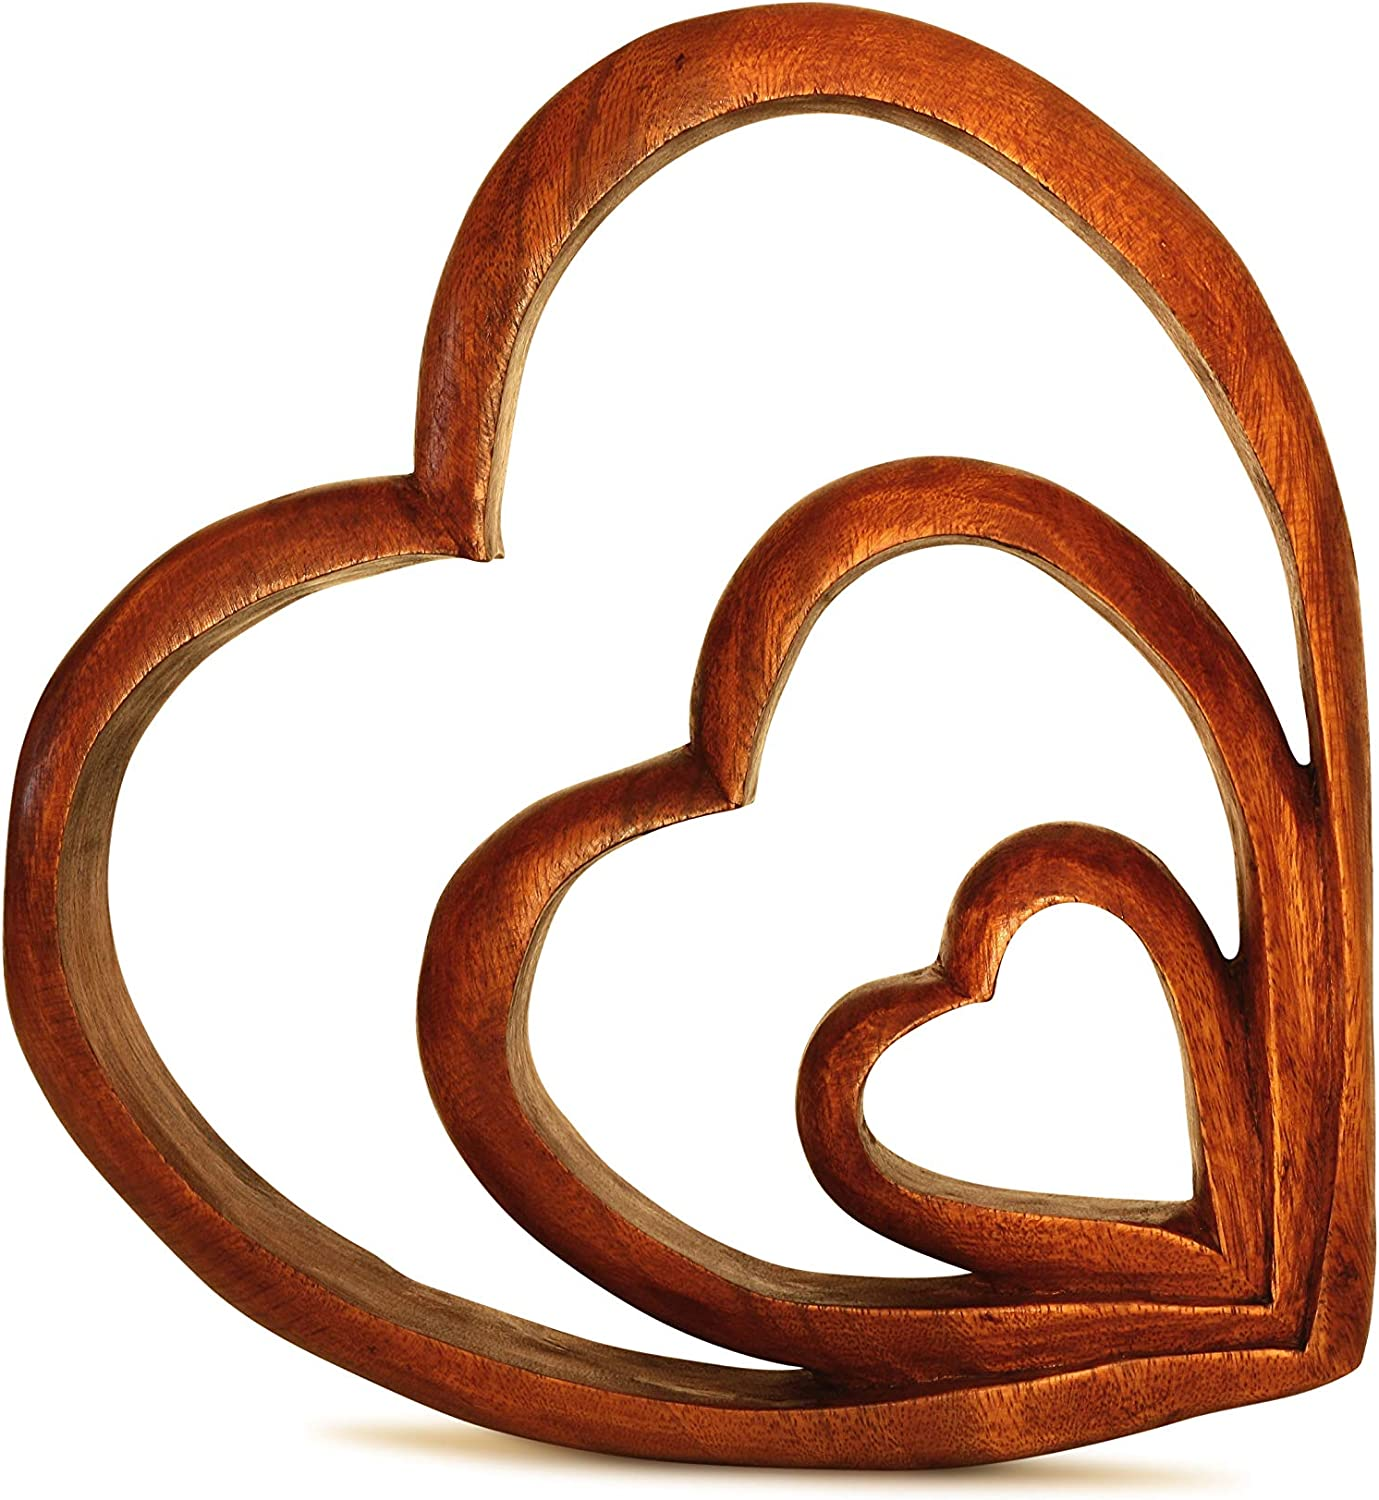 G6 Collection Wooden Handmade Abstract Sculpture Statue Handcrafted Hearts Of Love Gift Art Decorative Home Decor Figurine Accent Decoration Artwork Hand Carved Hearts Of Love Kitchen Dining Amazon Com